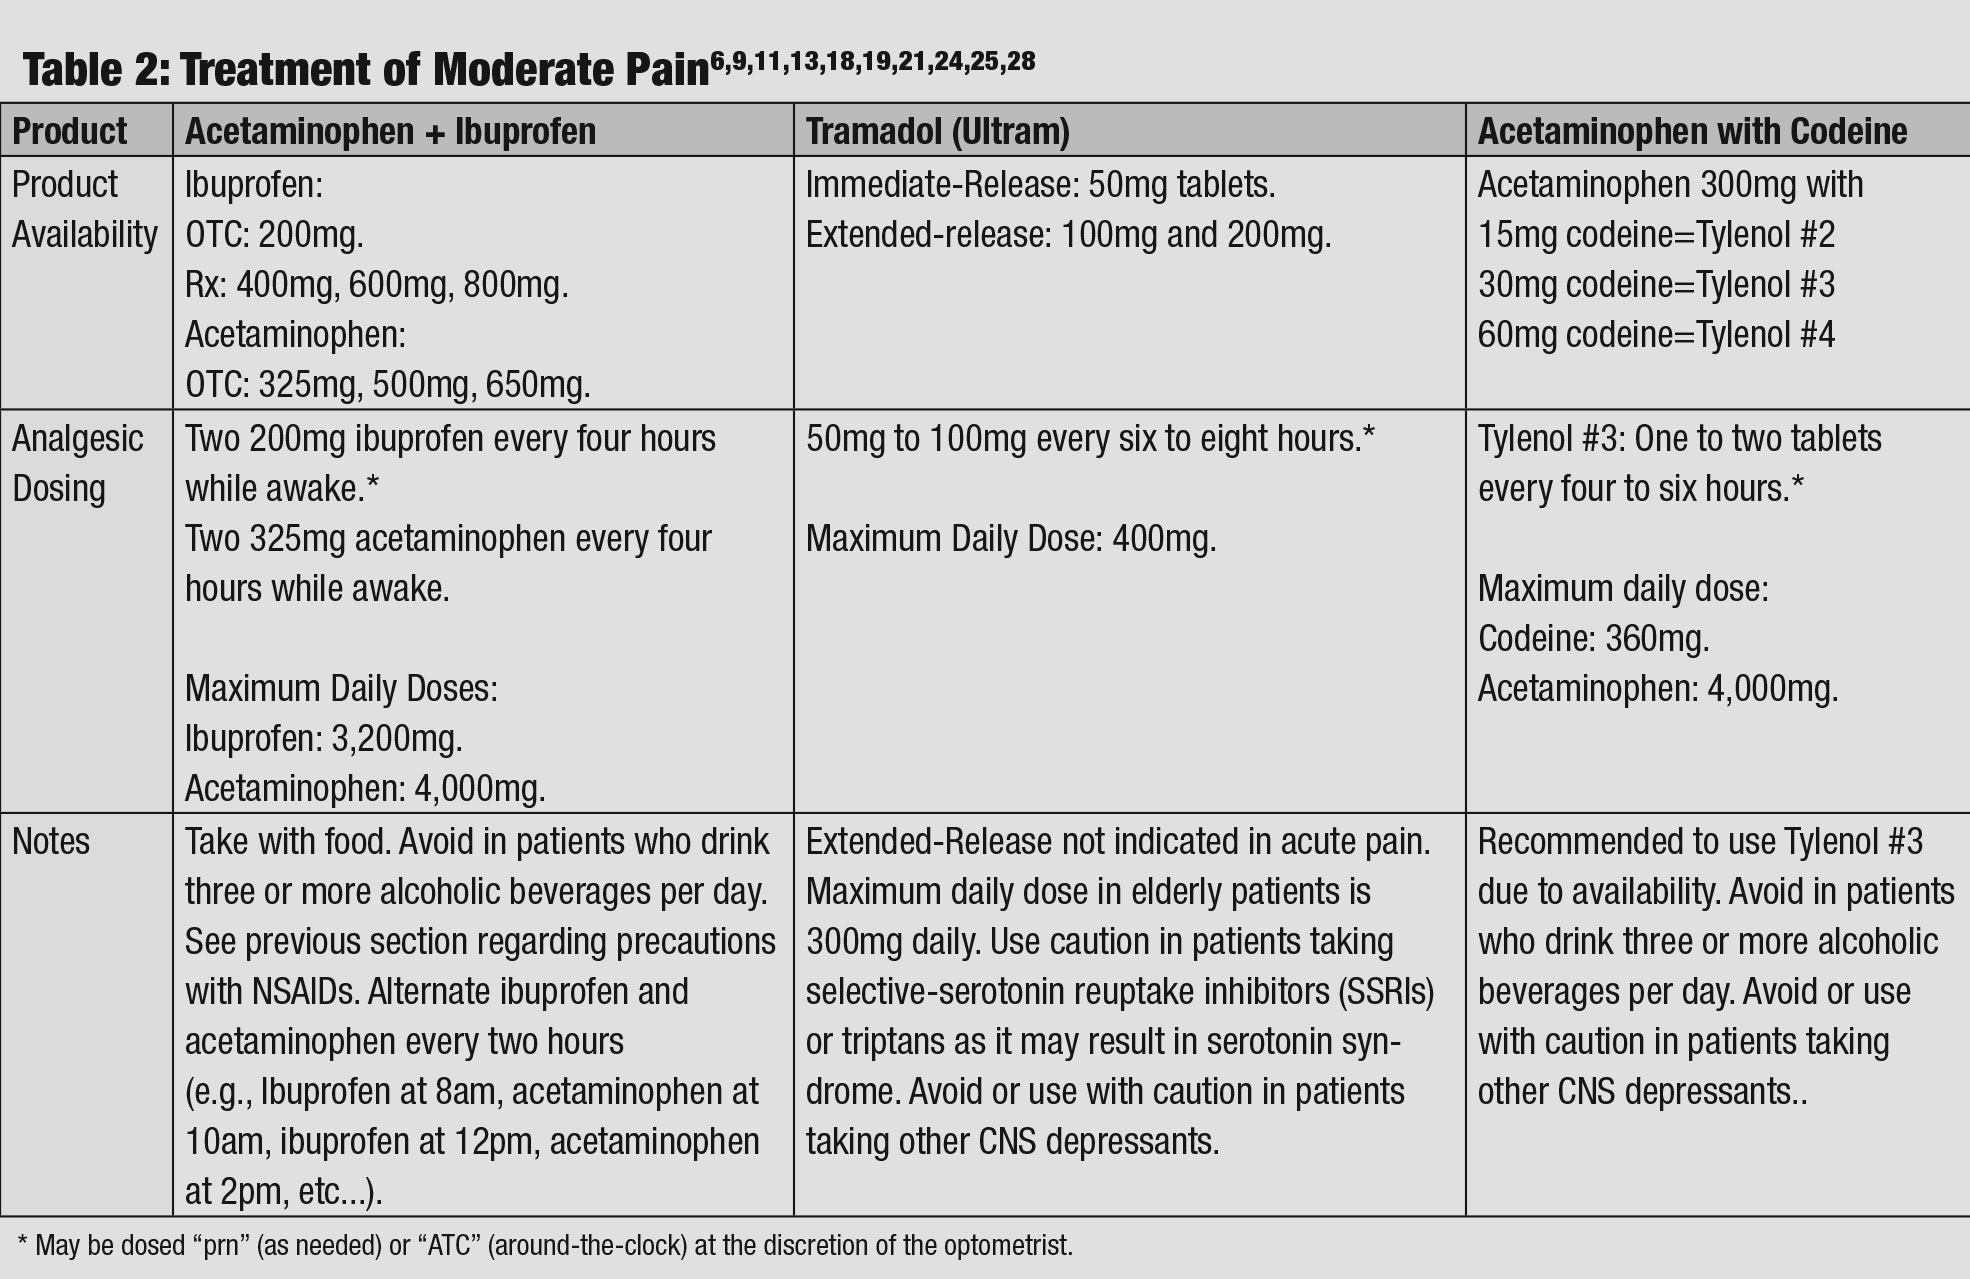 Treatment of Moderate Pain.